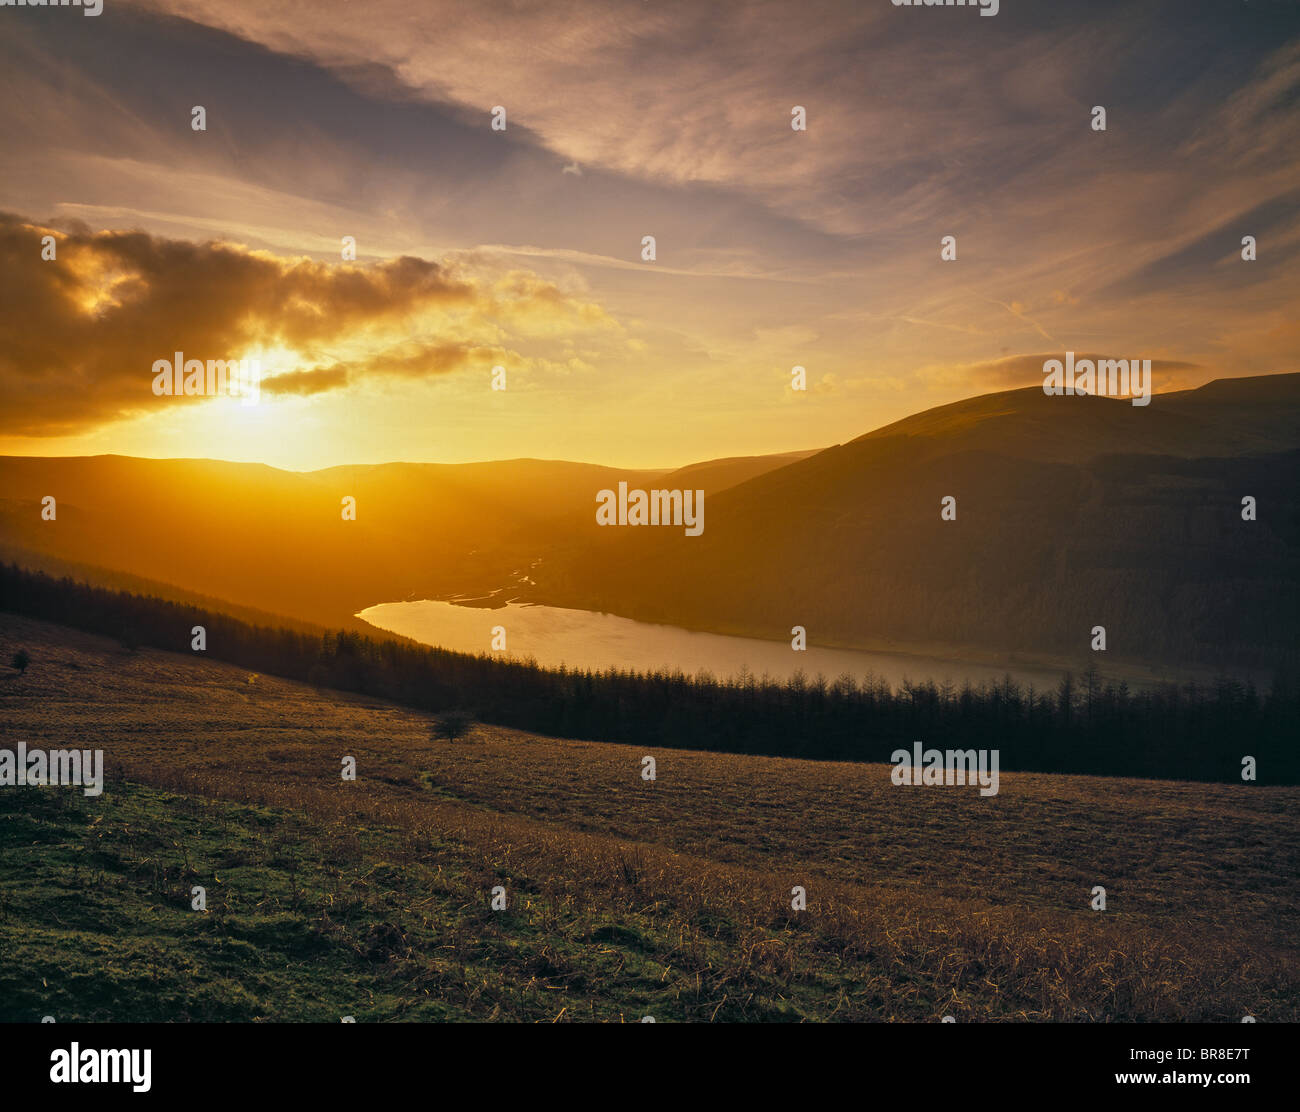 TALYBONT RESERVOIR BRECON BEACONS AT SUN SET - Stock Image